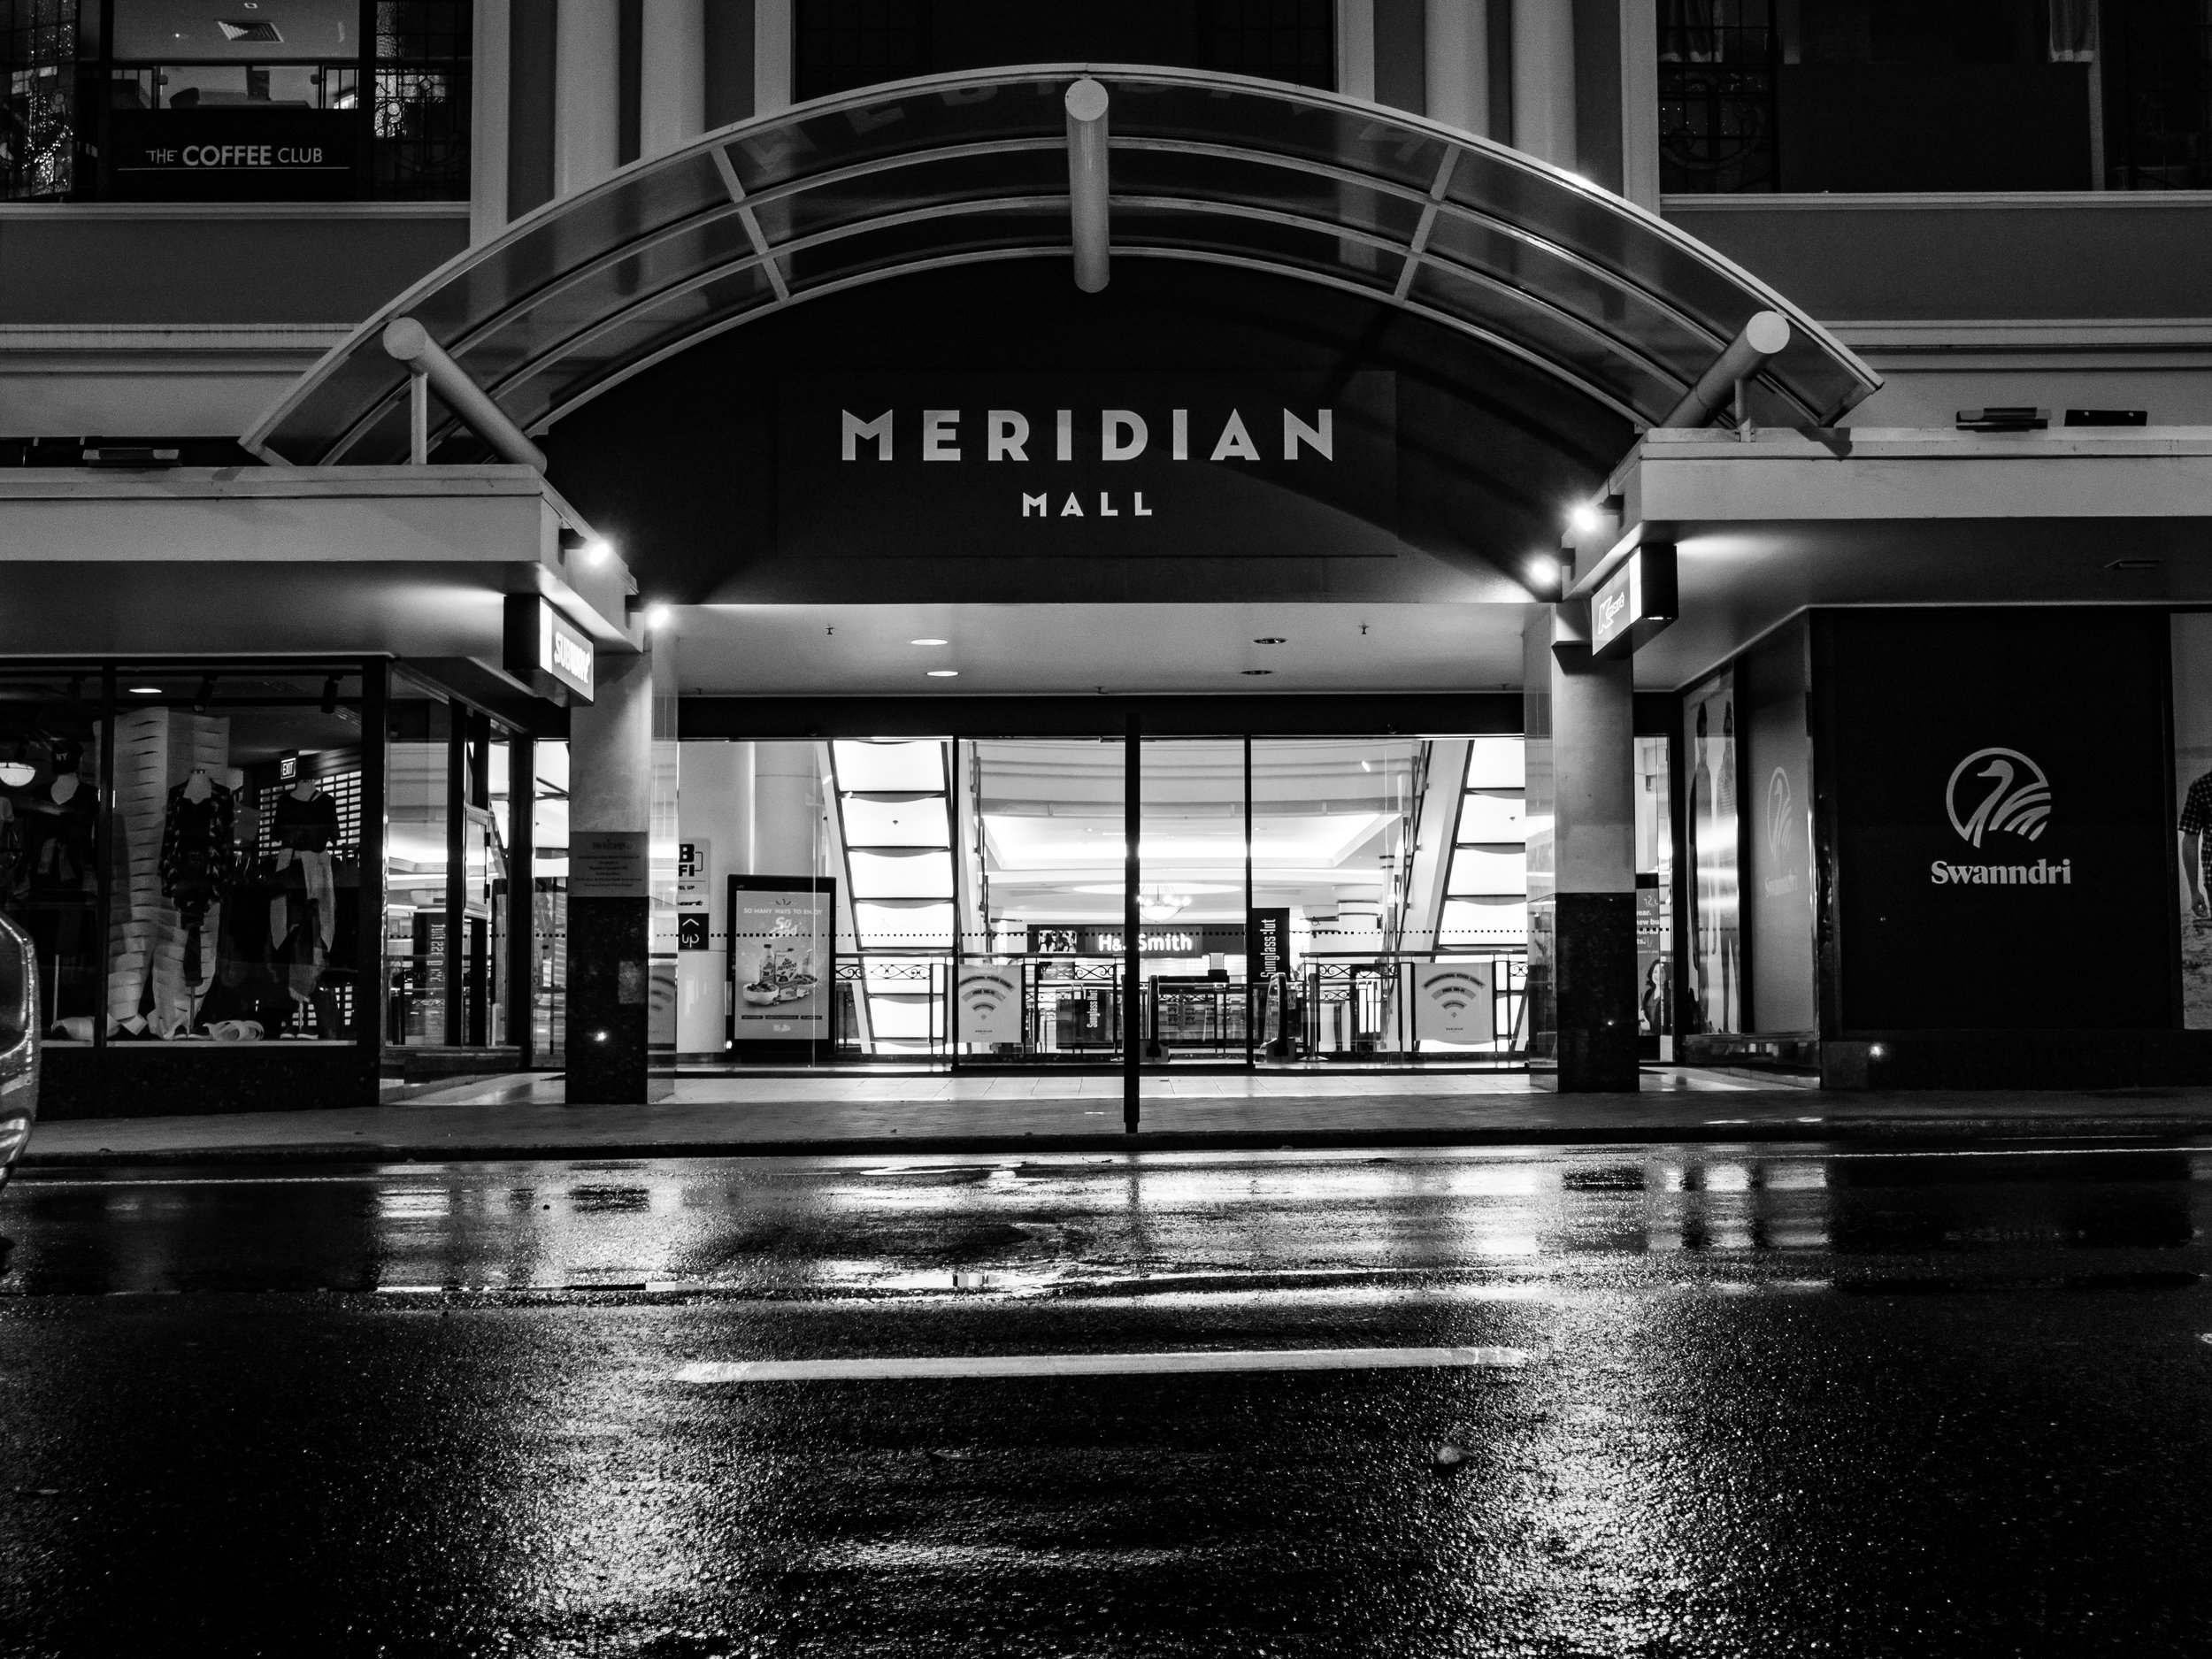 meridian entrance dunedin in black and white